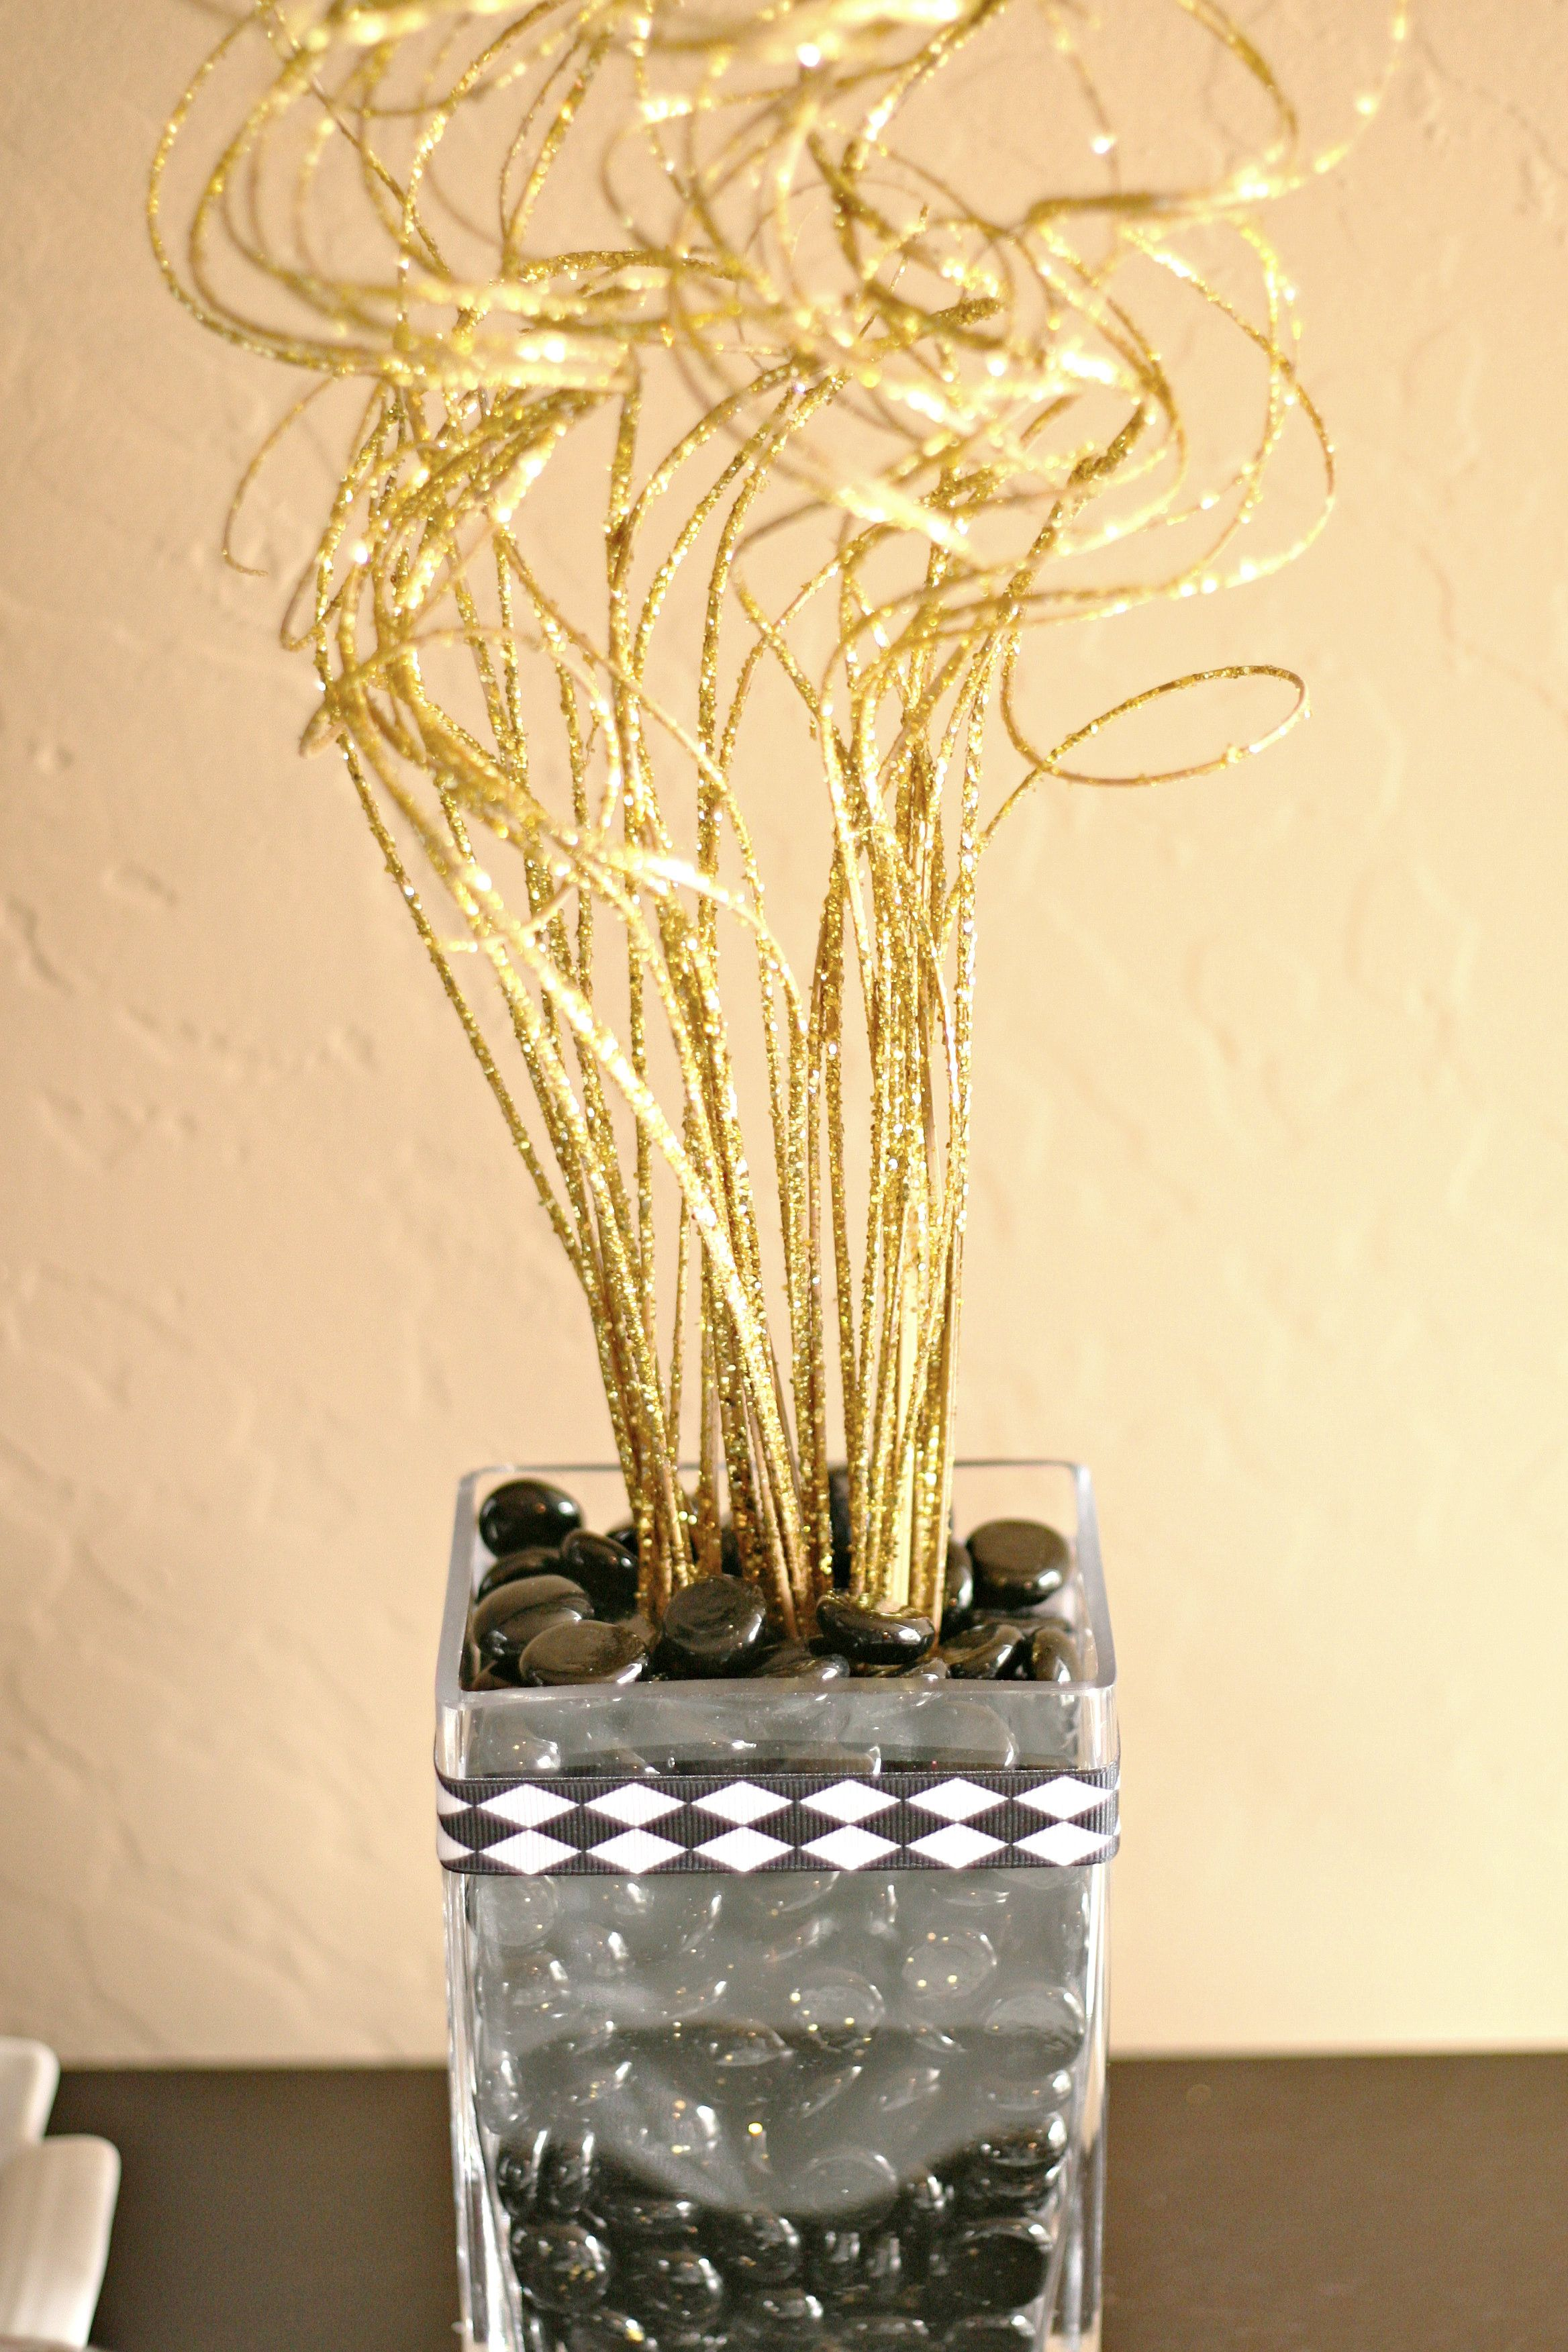 New Year's Eve Decorations (With images) | New years eve ...